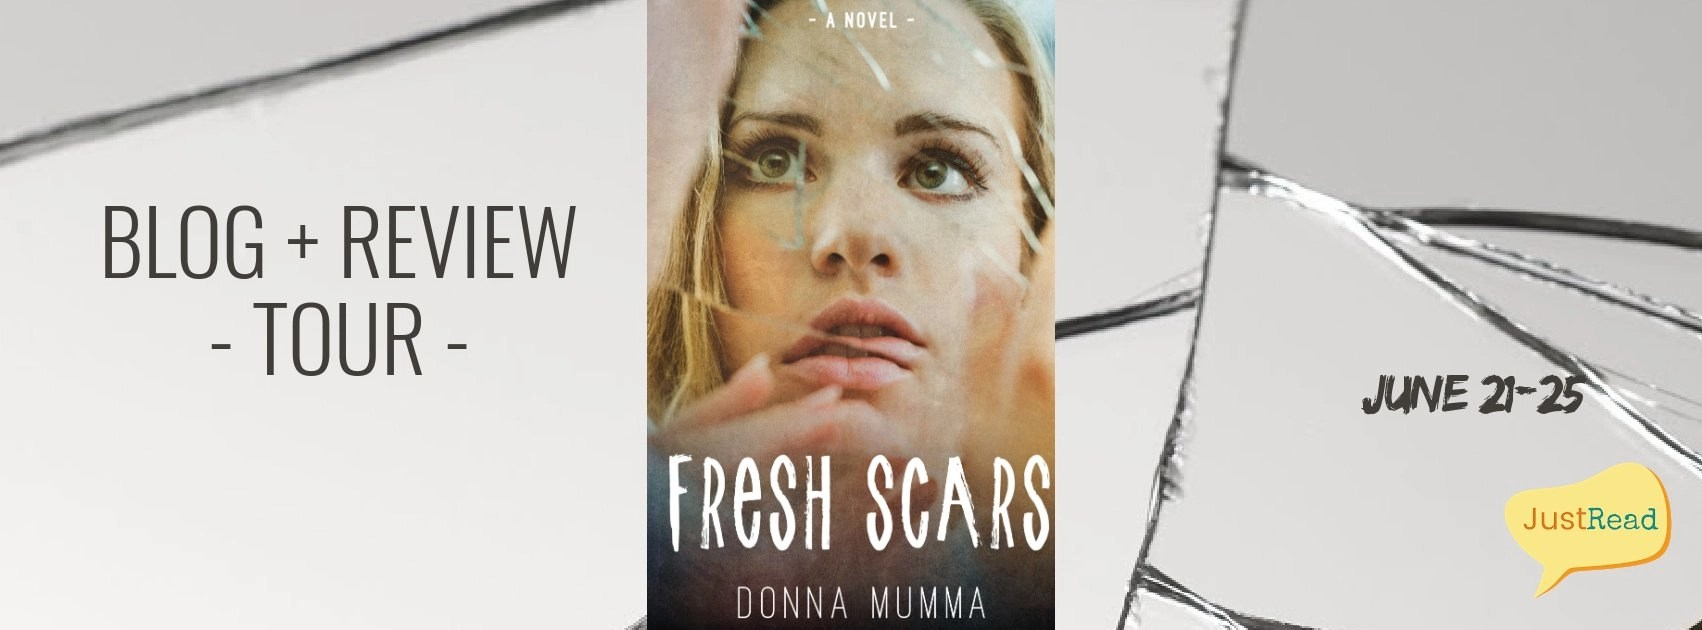 Welcome to the Fresh Scars Blog + Review Tour & Giveaway!